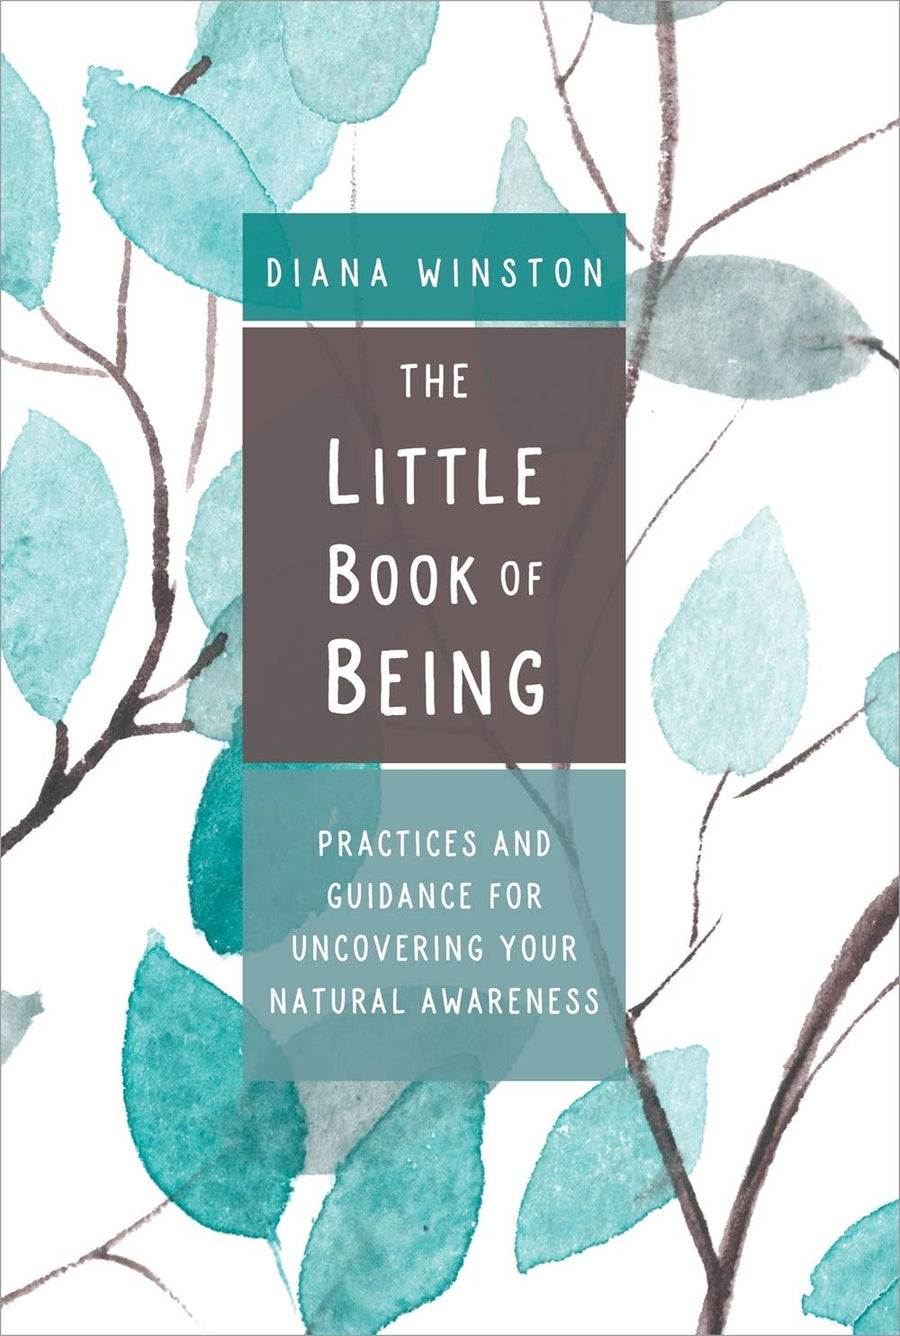 The Little Book of Being: Practices and Guidance for Uncovering Your Natural Awarenes by Diana Winston